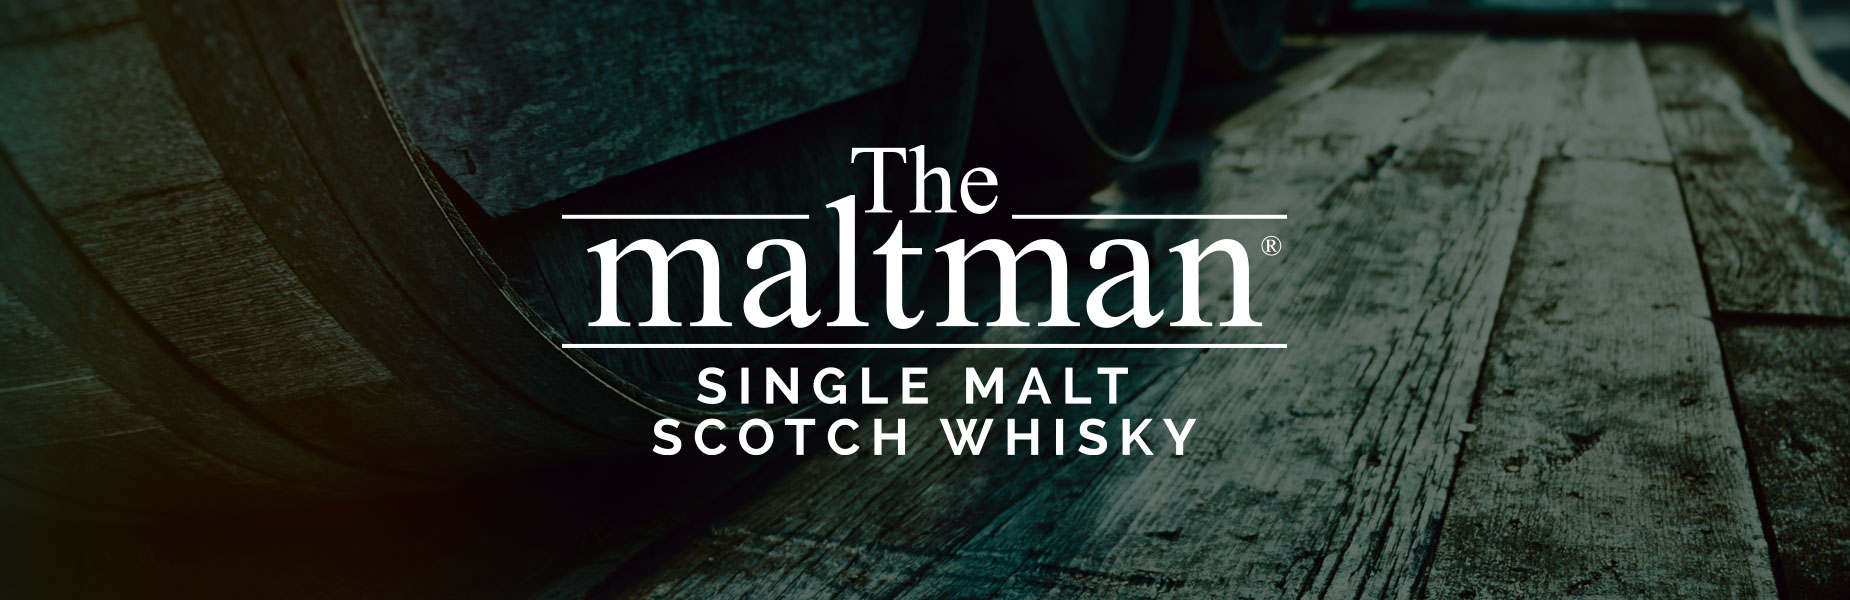 The Maltman Single Malt Scotch Whisky